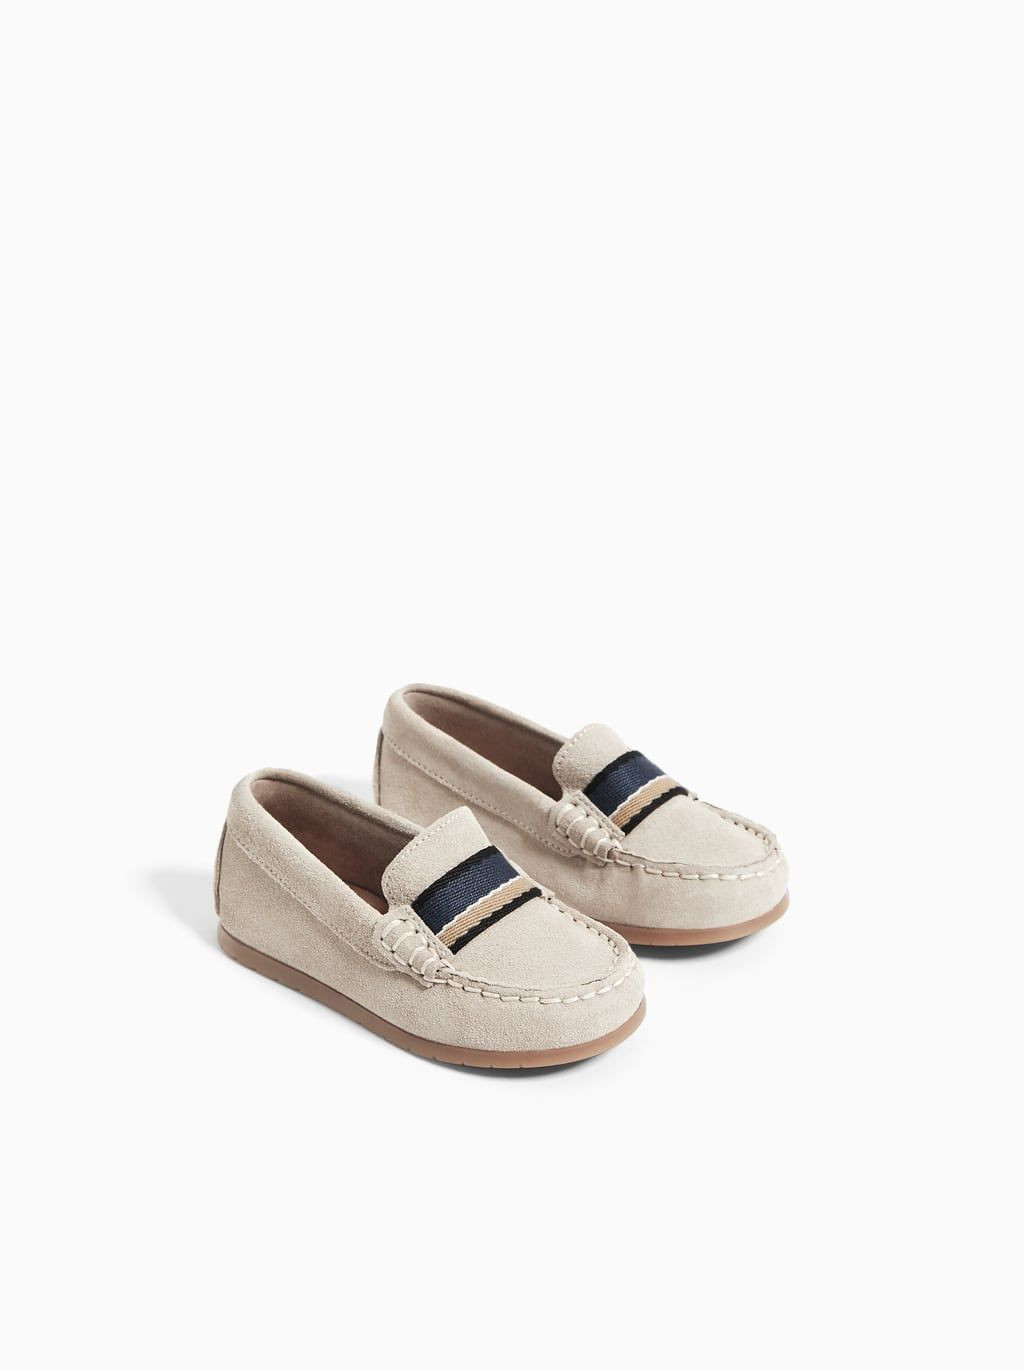 LEATHER LOAFERS WITH BAND - View All